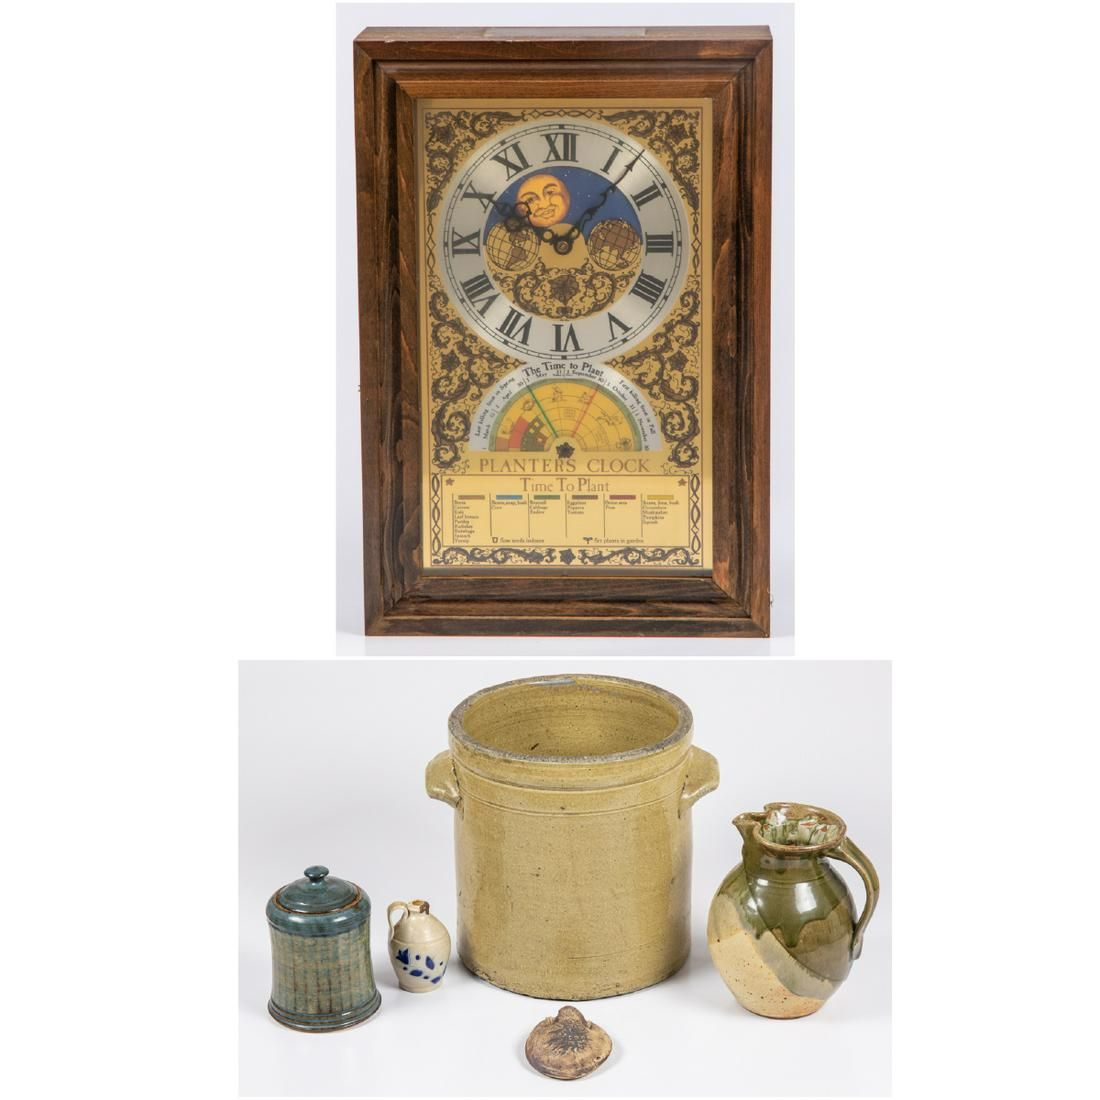 A Miscellaneous Collection of Earthenware Pottery, 20th